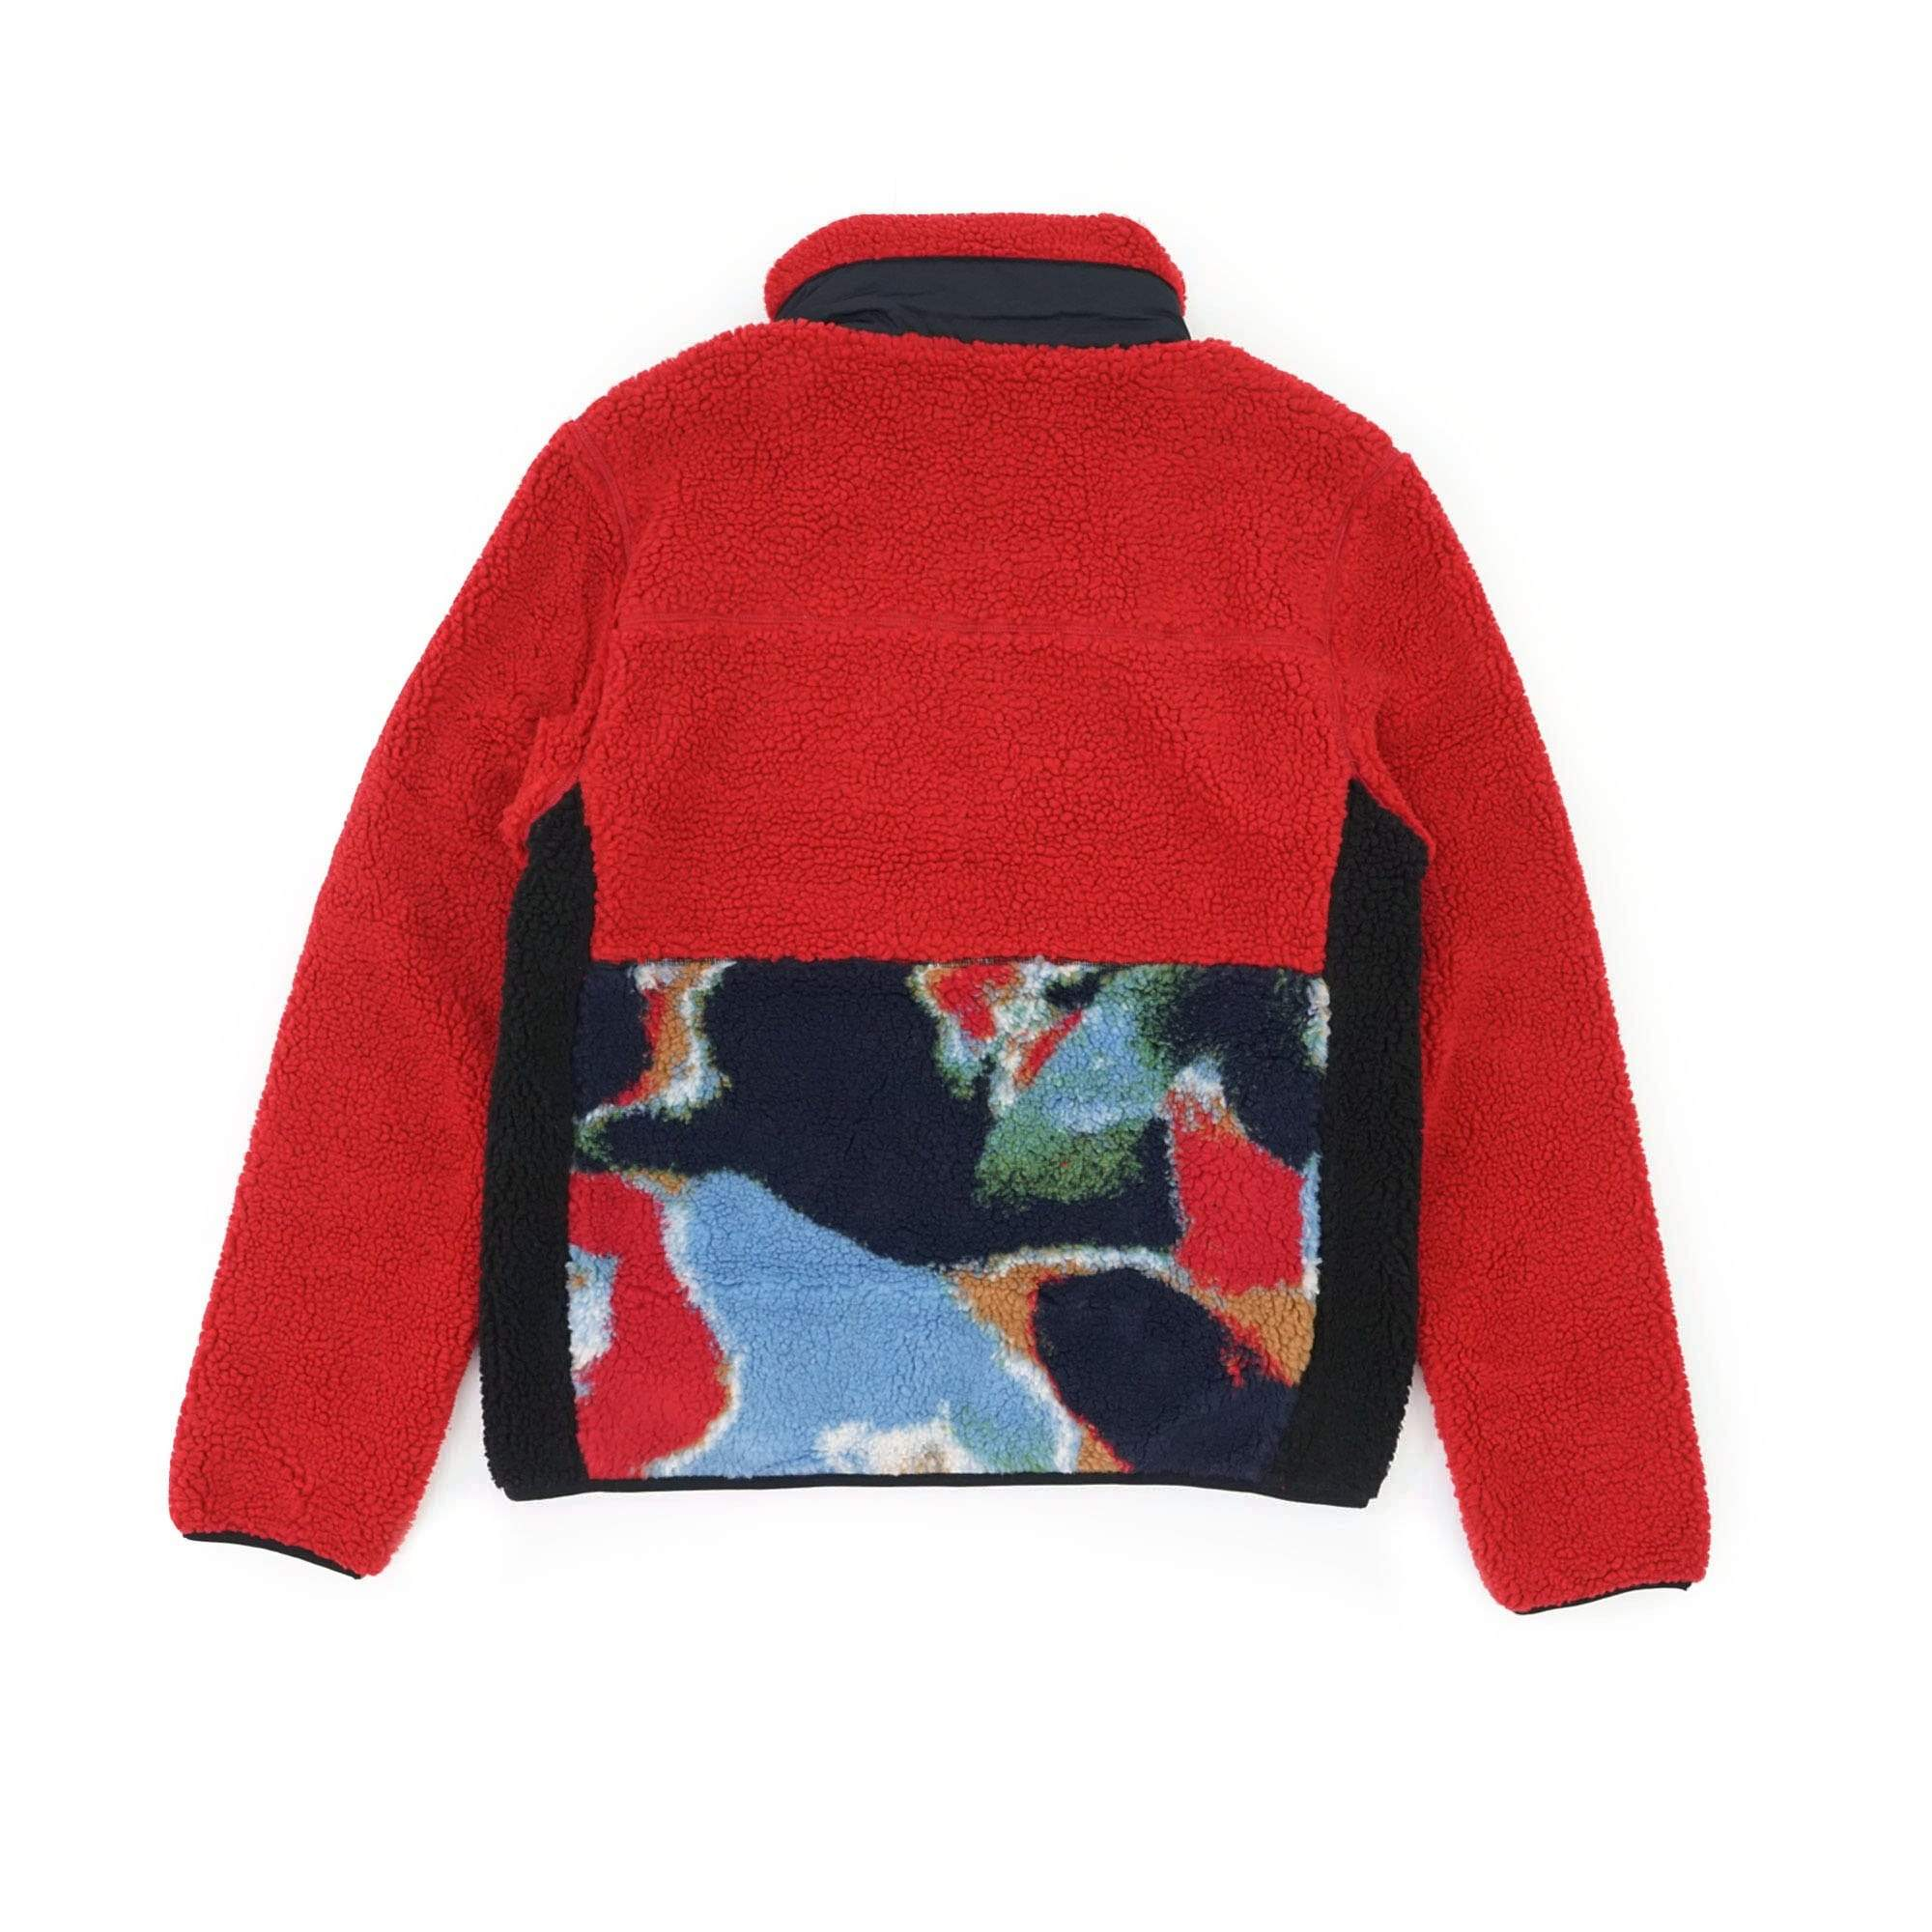 Penfield Jacken MATTAWA Print Fleece